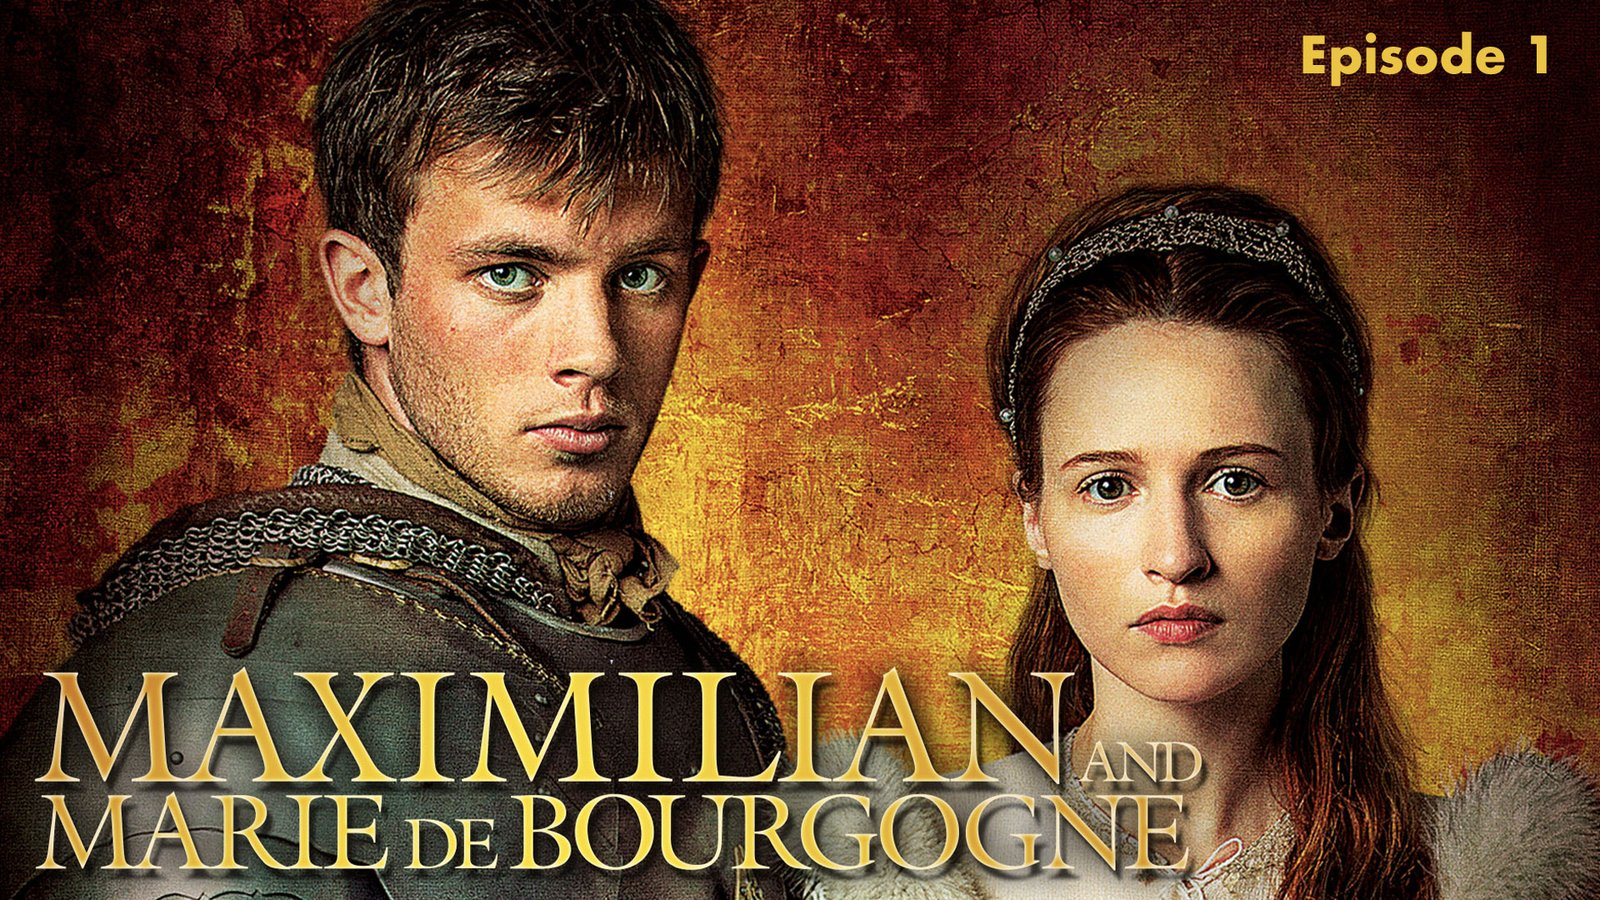 Maximilian and Marie de Bourgogne: Episode 1